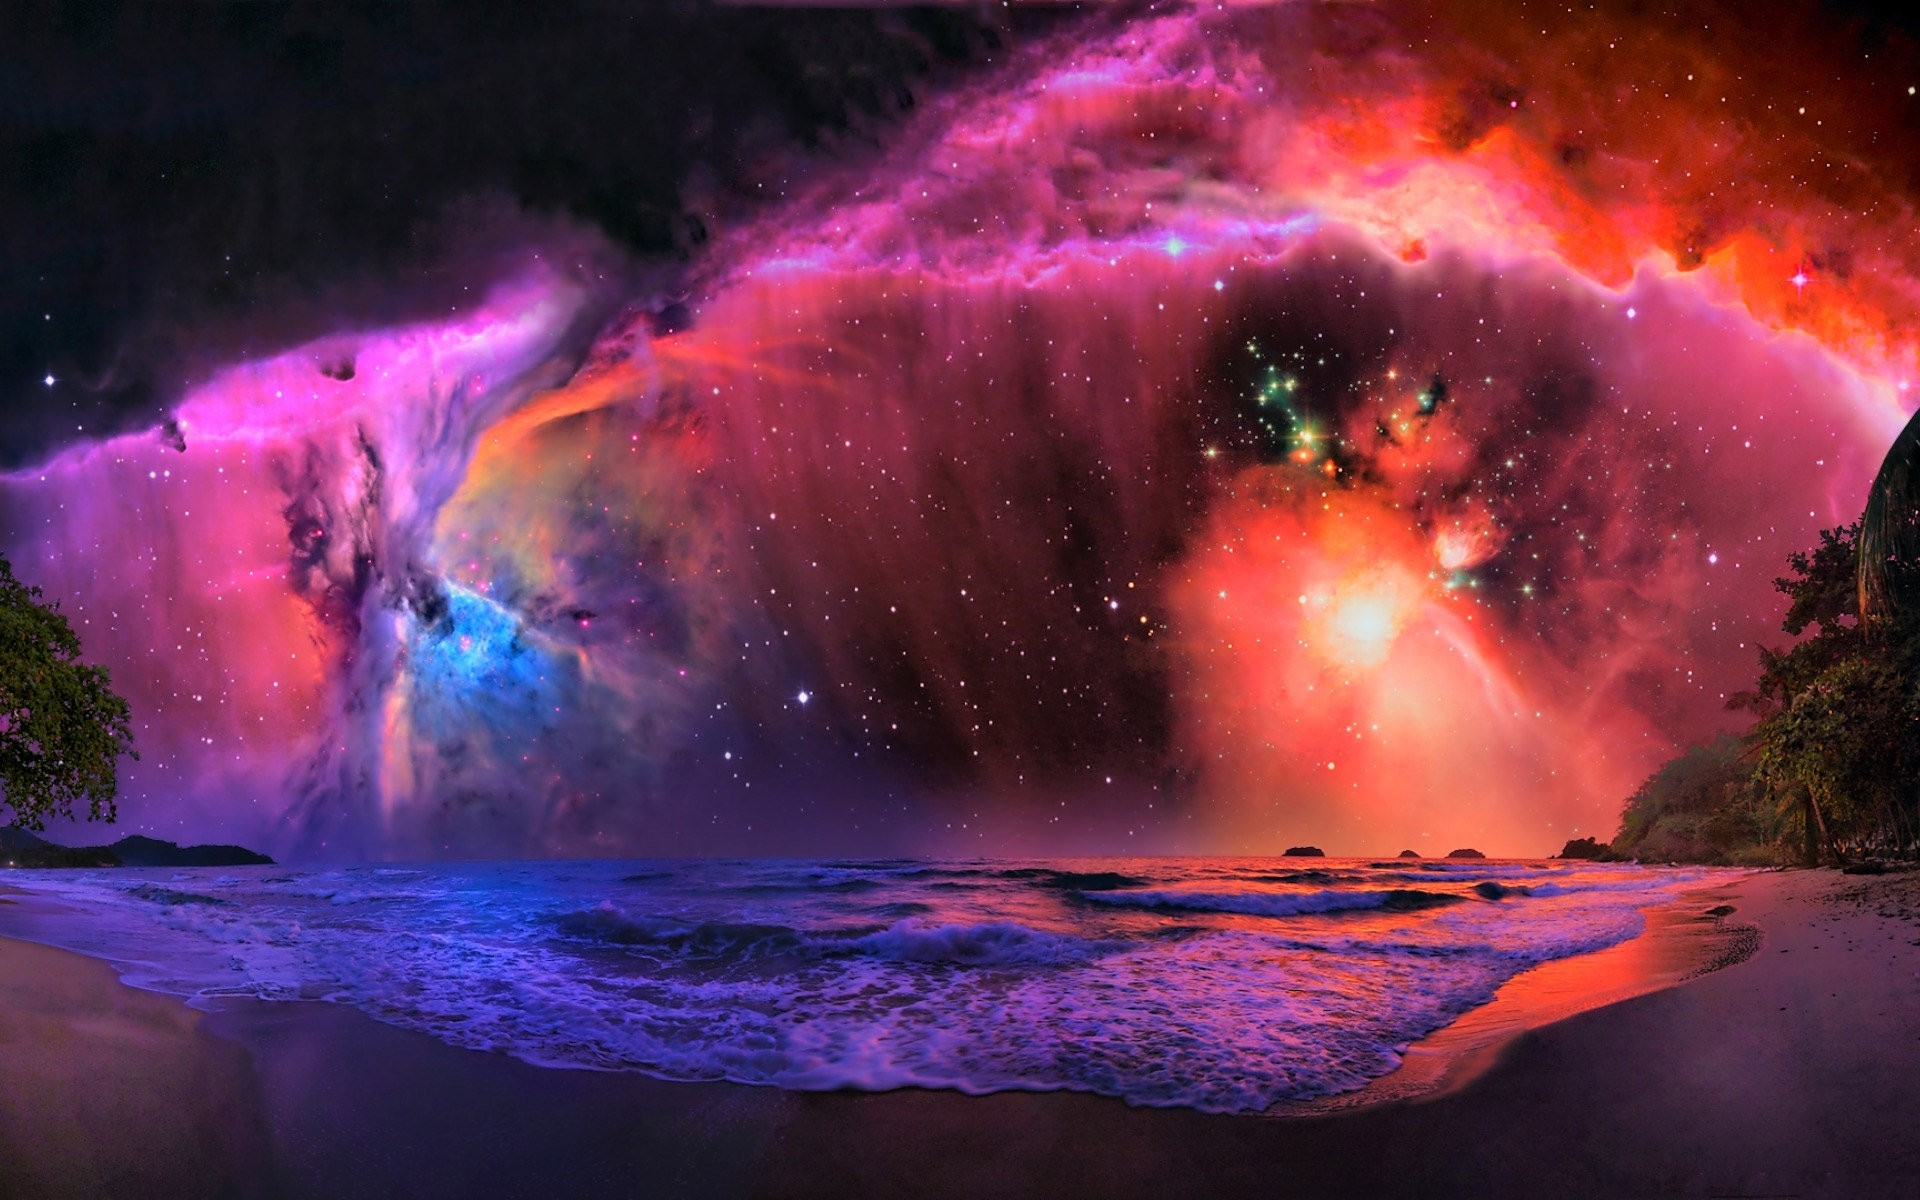 3d Galaxy Wallpaper With Quotes Quotesgram: Galaxy Desktop Backgrounds